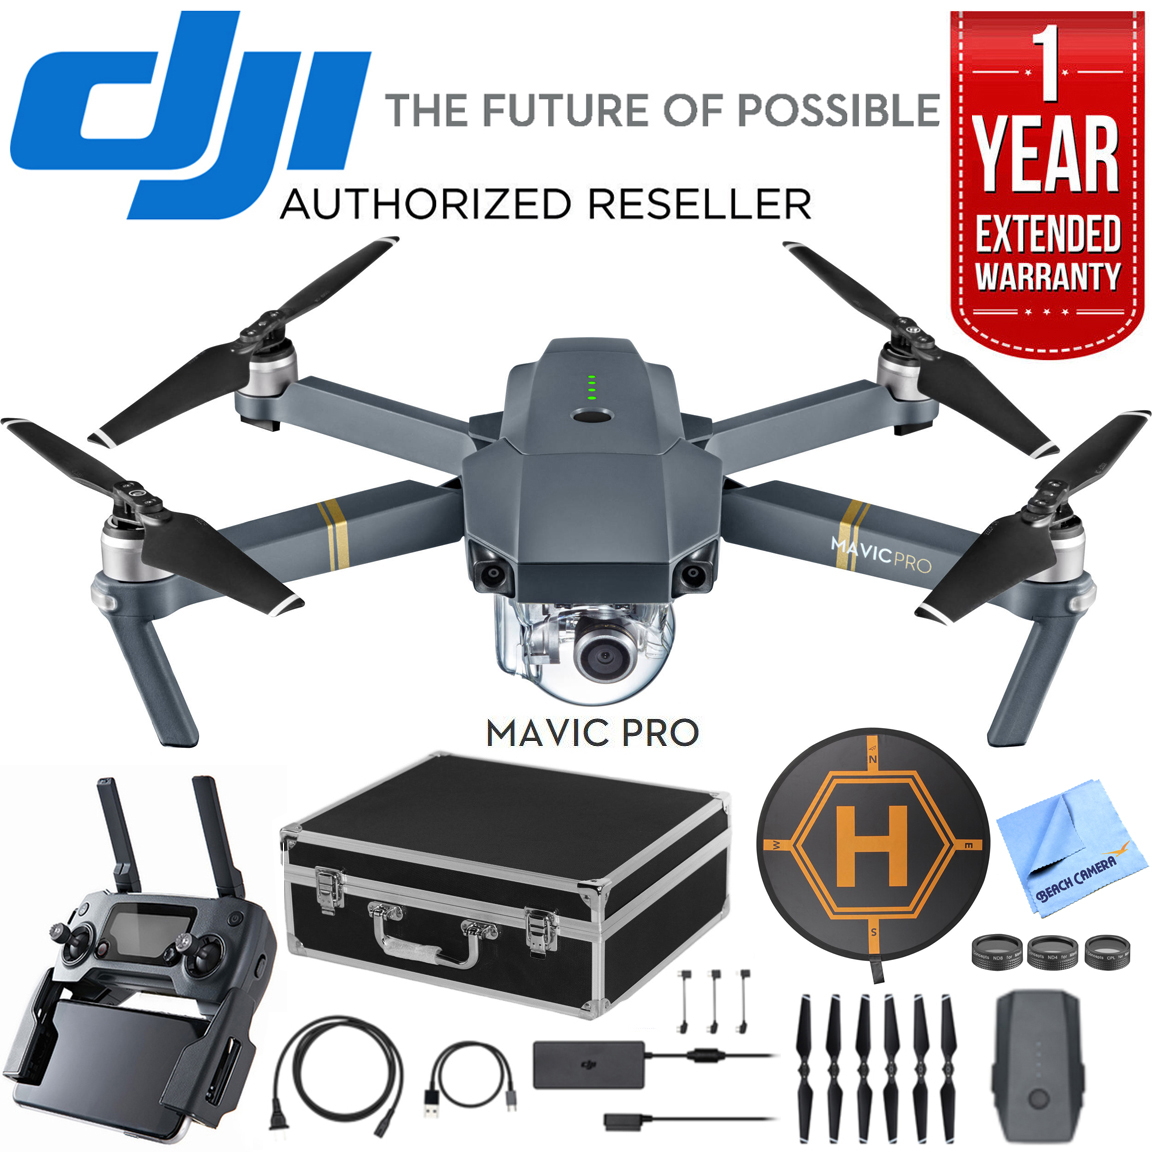 DJI Mavic Pro Quadcopter Drone with 4K Camera and Wi-Fi Premium Package With Spare Battery... by DJI